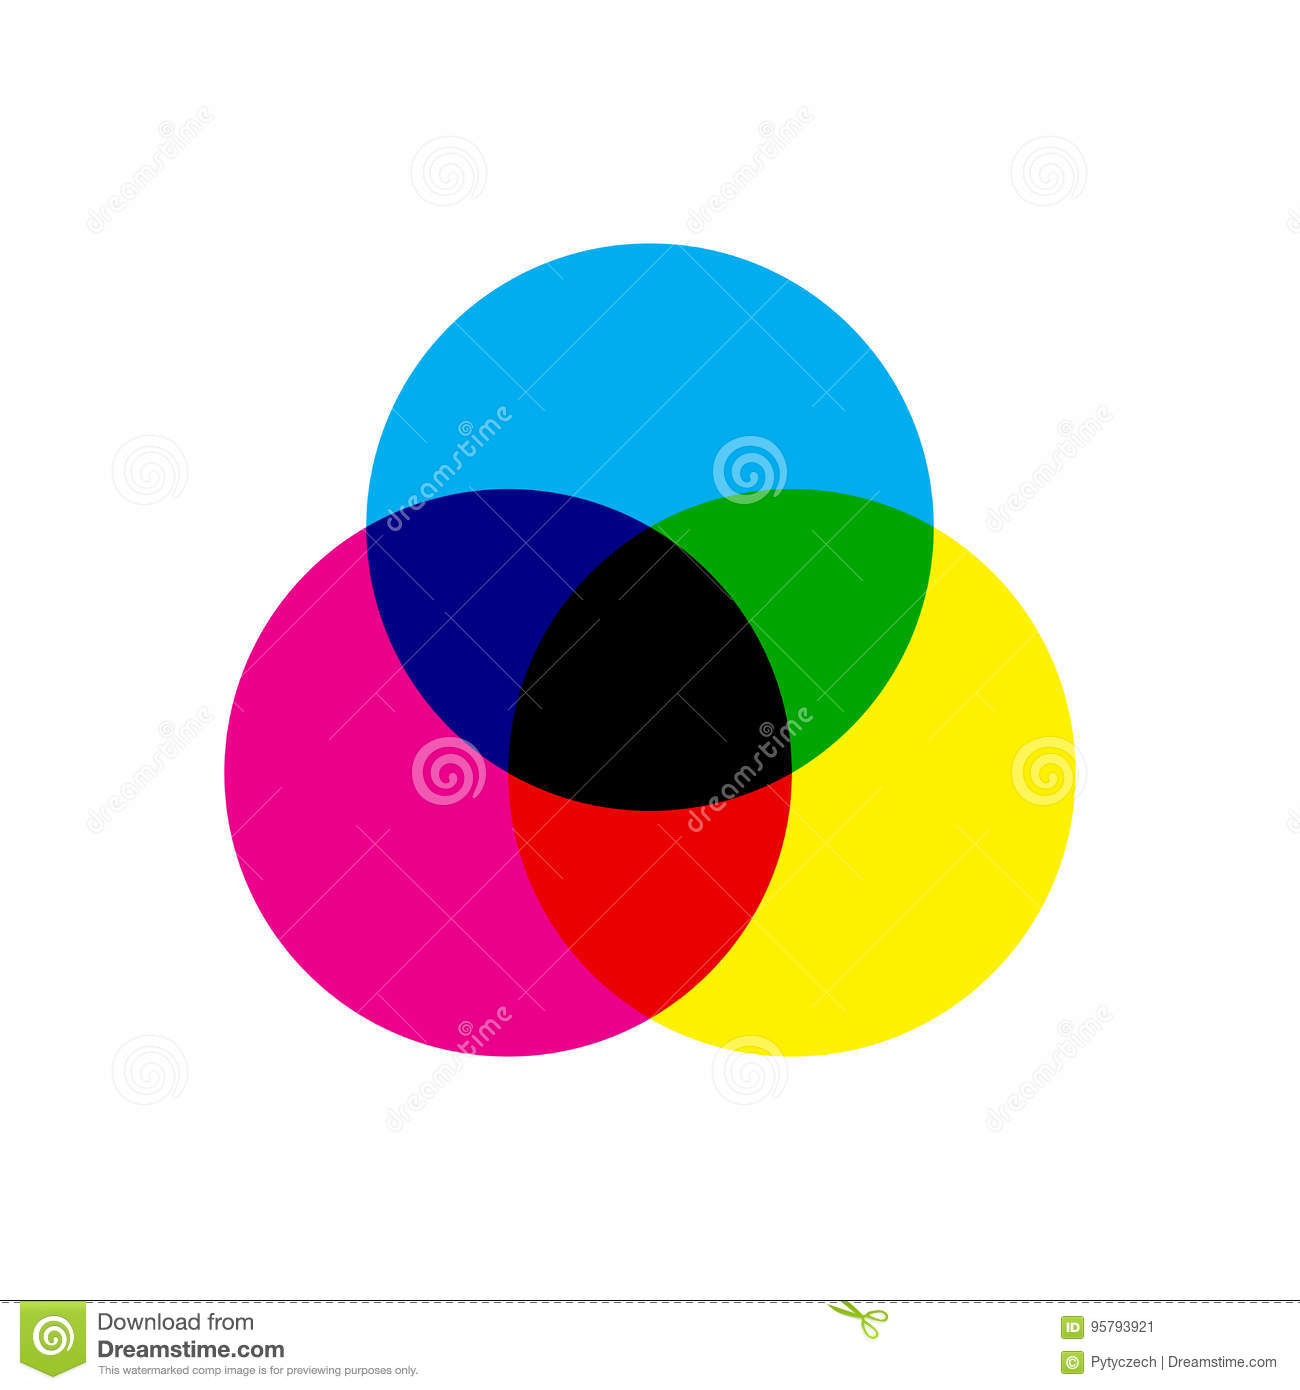 Cmyk Color Model Scheme Three Overlapping Circles In Cyan Magenta